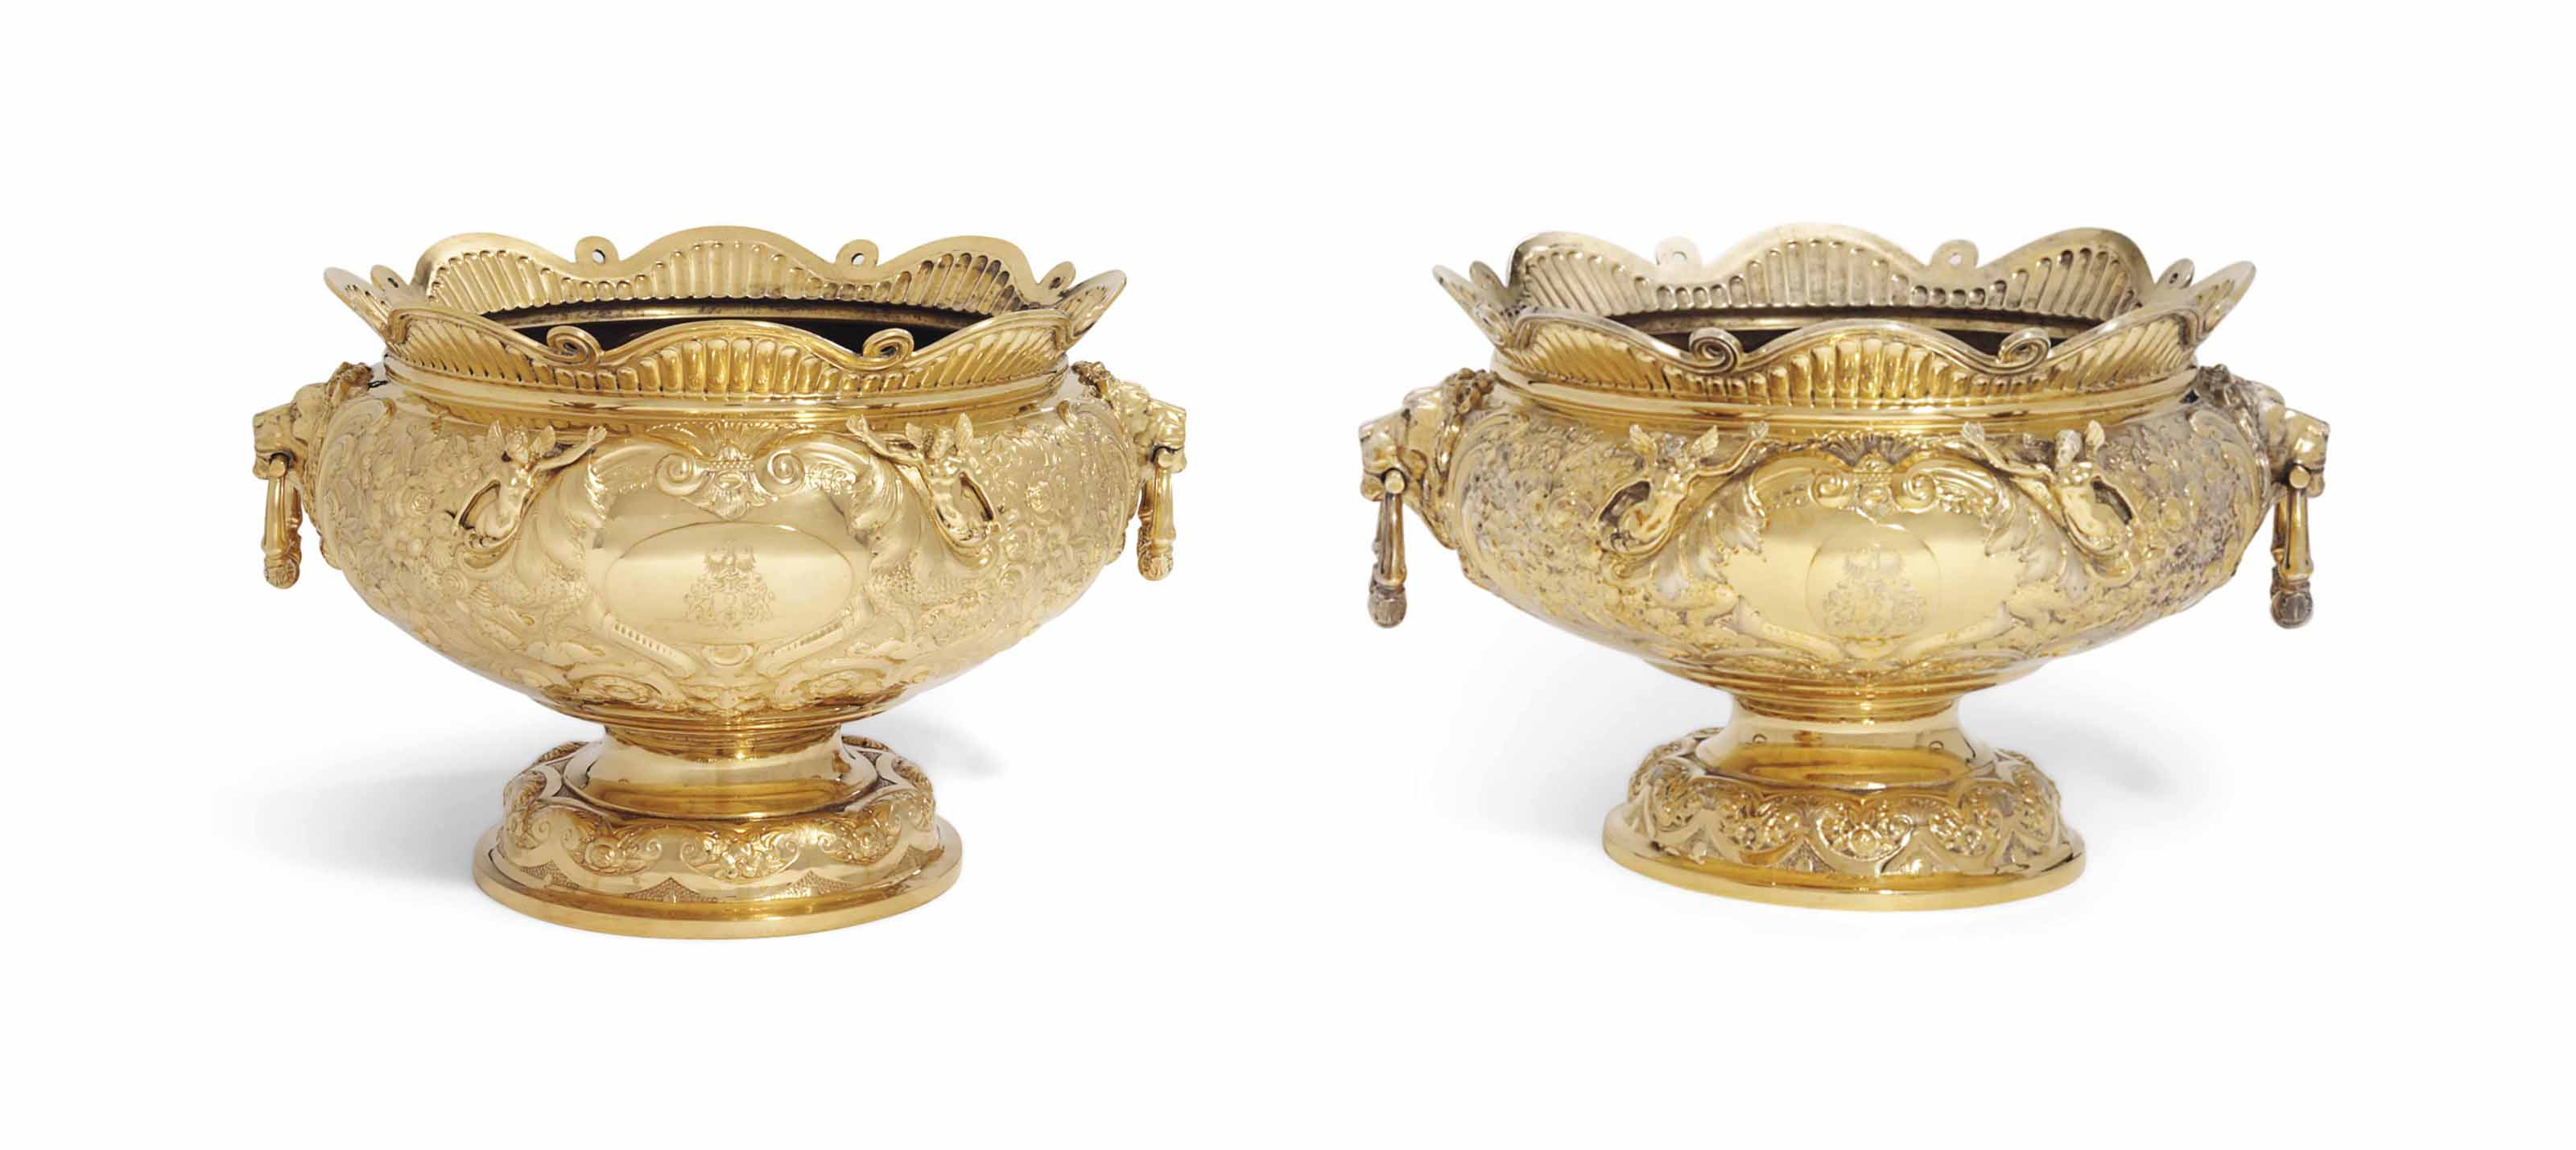 TWO GRADUATED VICTORIAN AND EDWARD VII SILVER-GILT PUNCH-BOWLS